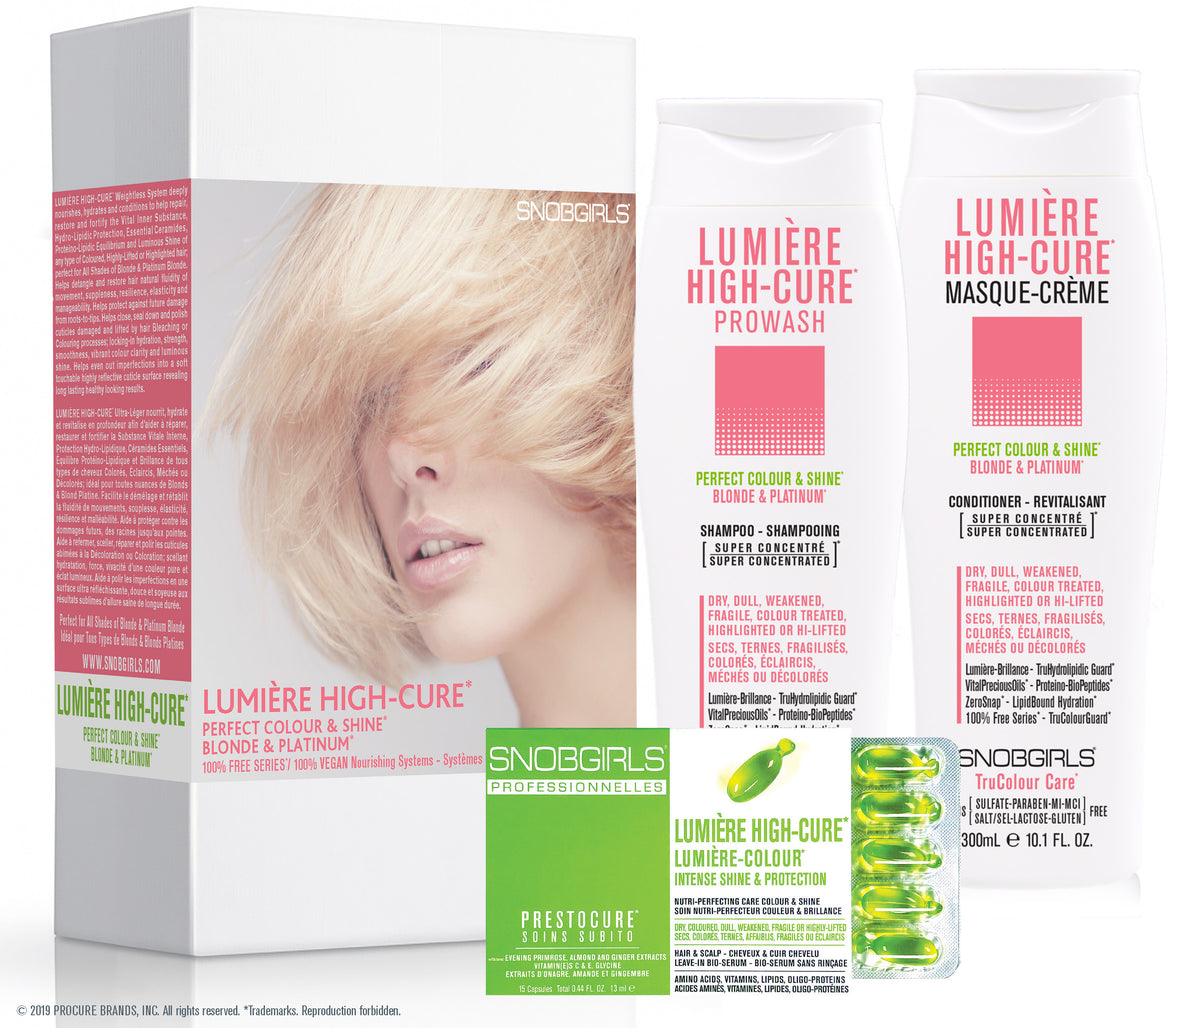 Trio LUMIERE HIGH-CURE Perfect Colour & Shine - SNOBGIRLS Canada